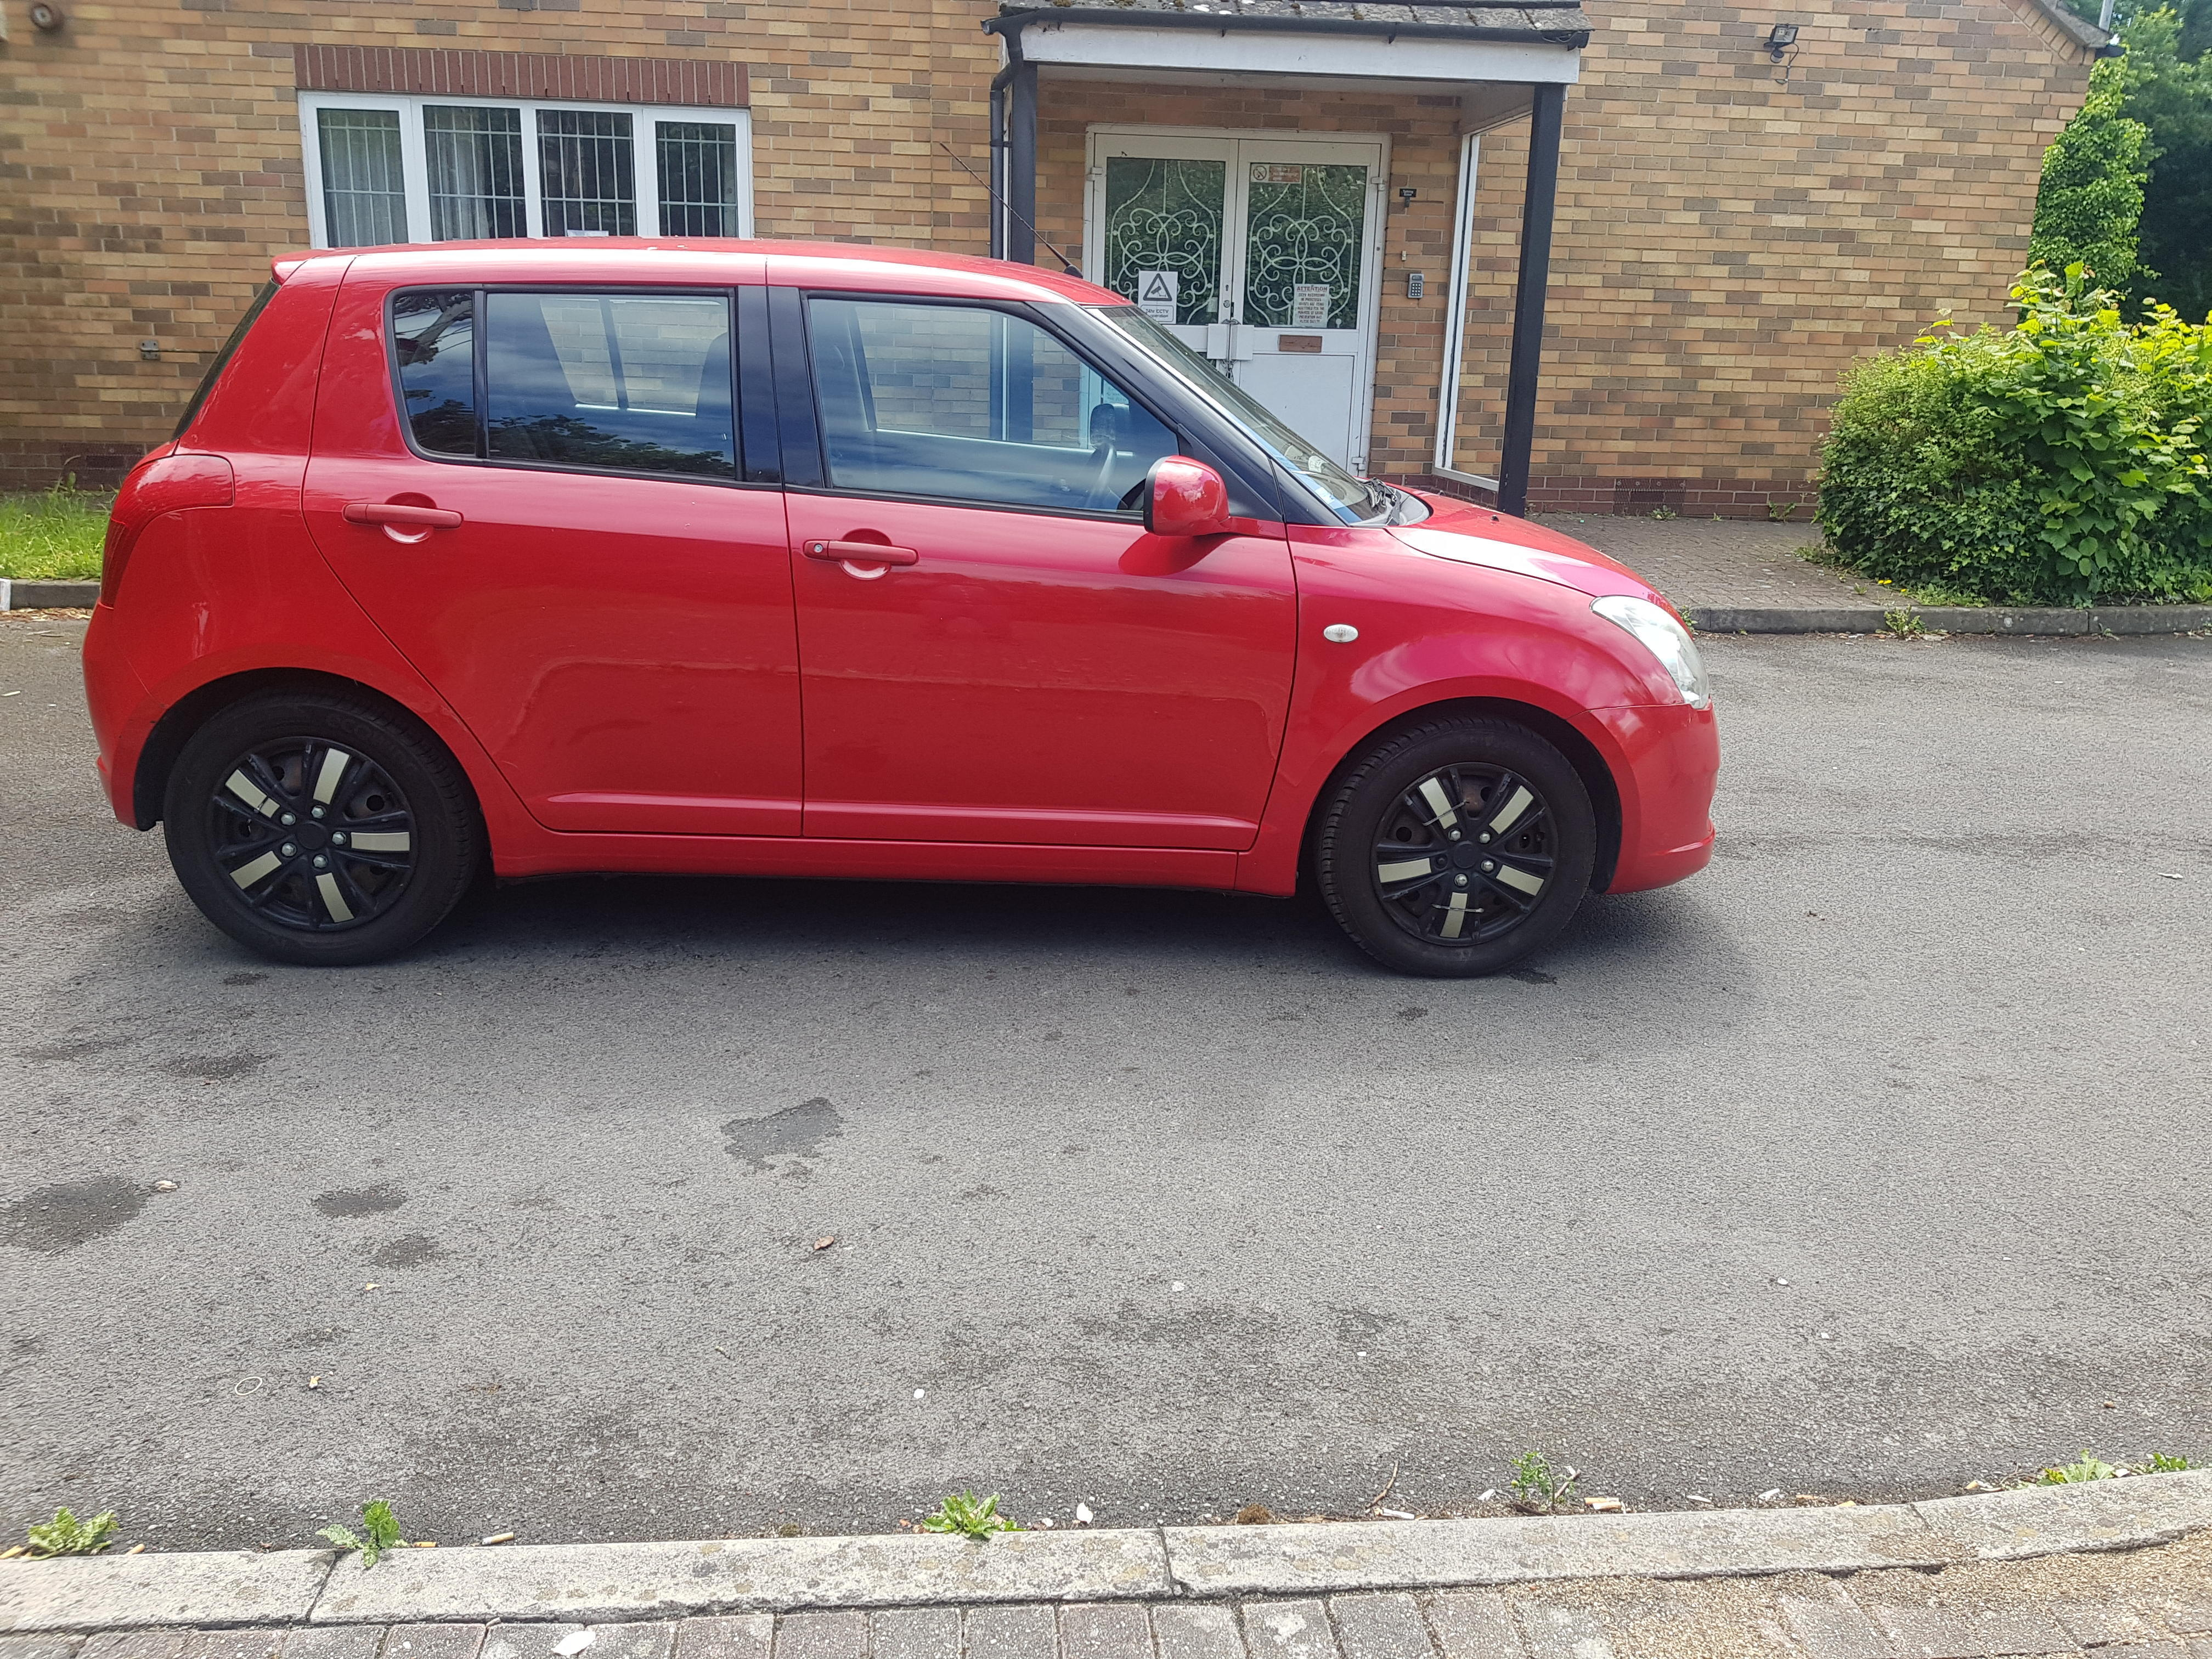 Suzuki Swift 1 4 litre Full service history in Southampton - Expired